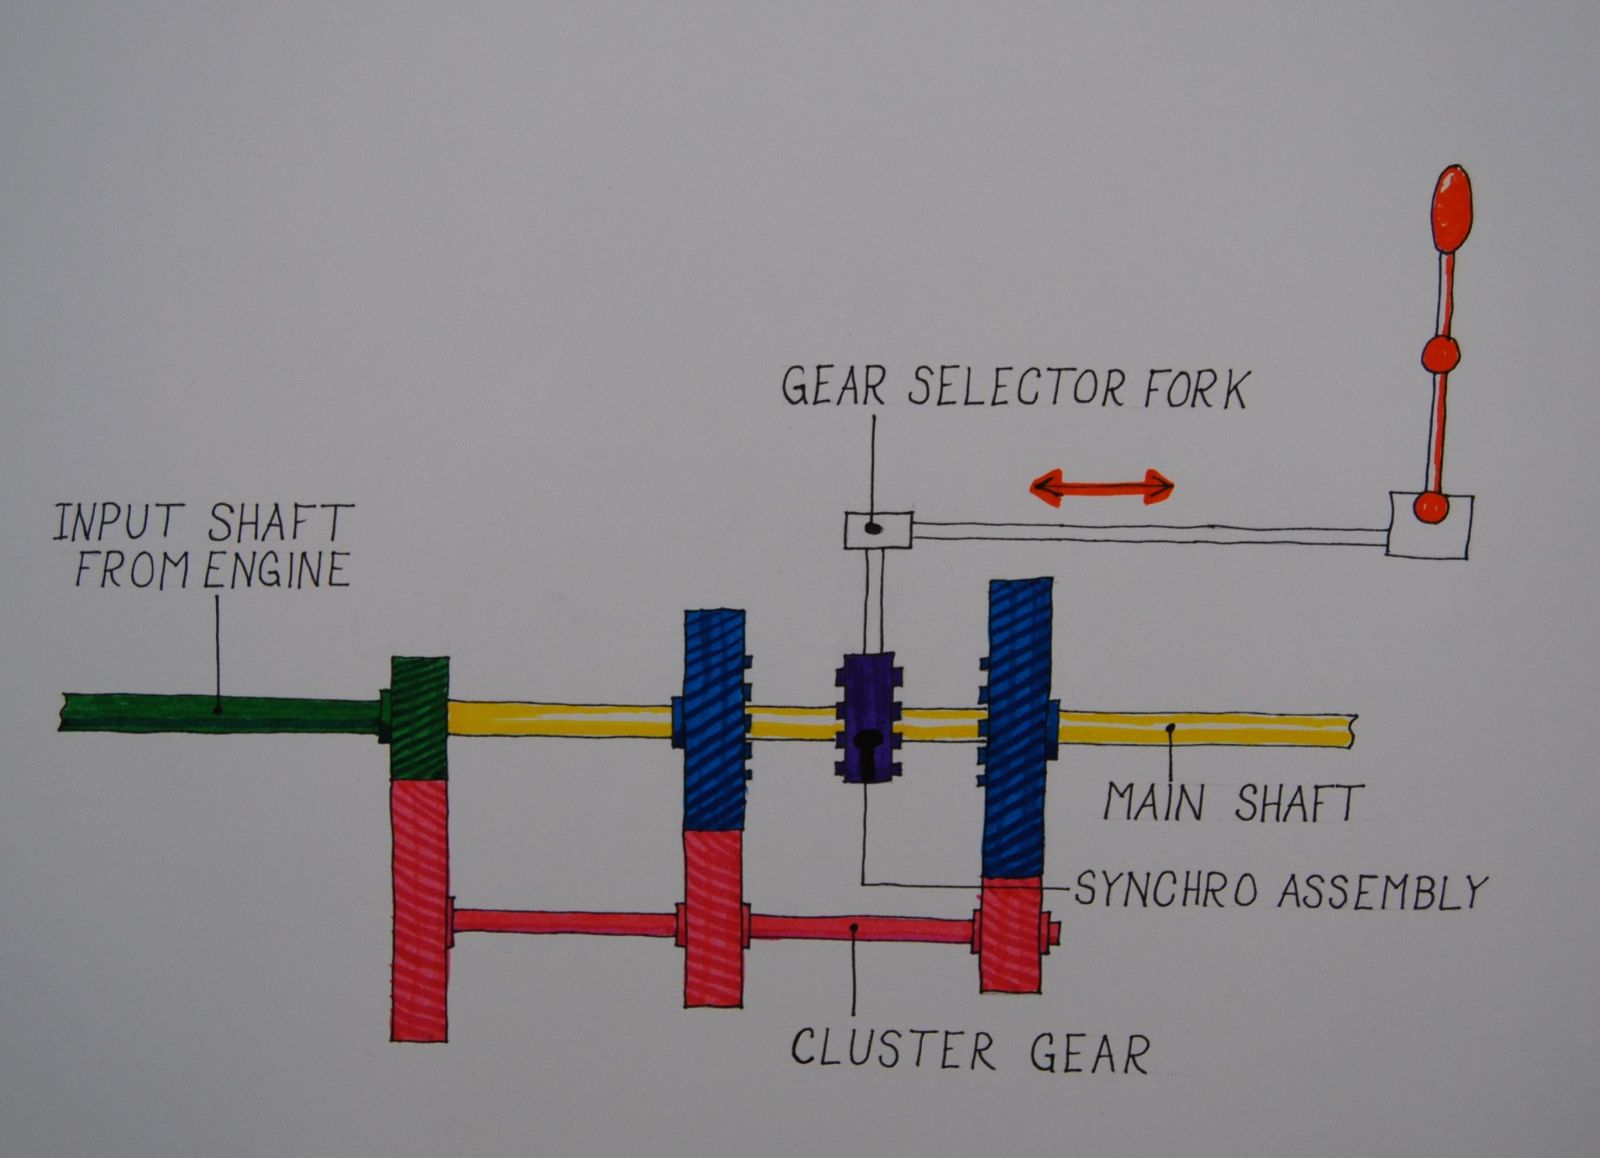 similiar muncie 4 speed shifter diagram keywords diagram shows the parts and basic workings of a gm muncie 4 speed